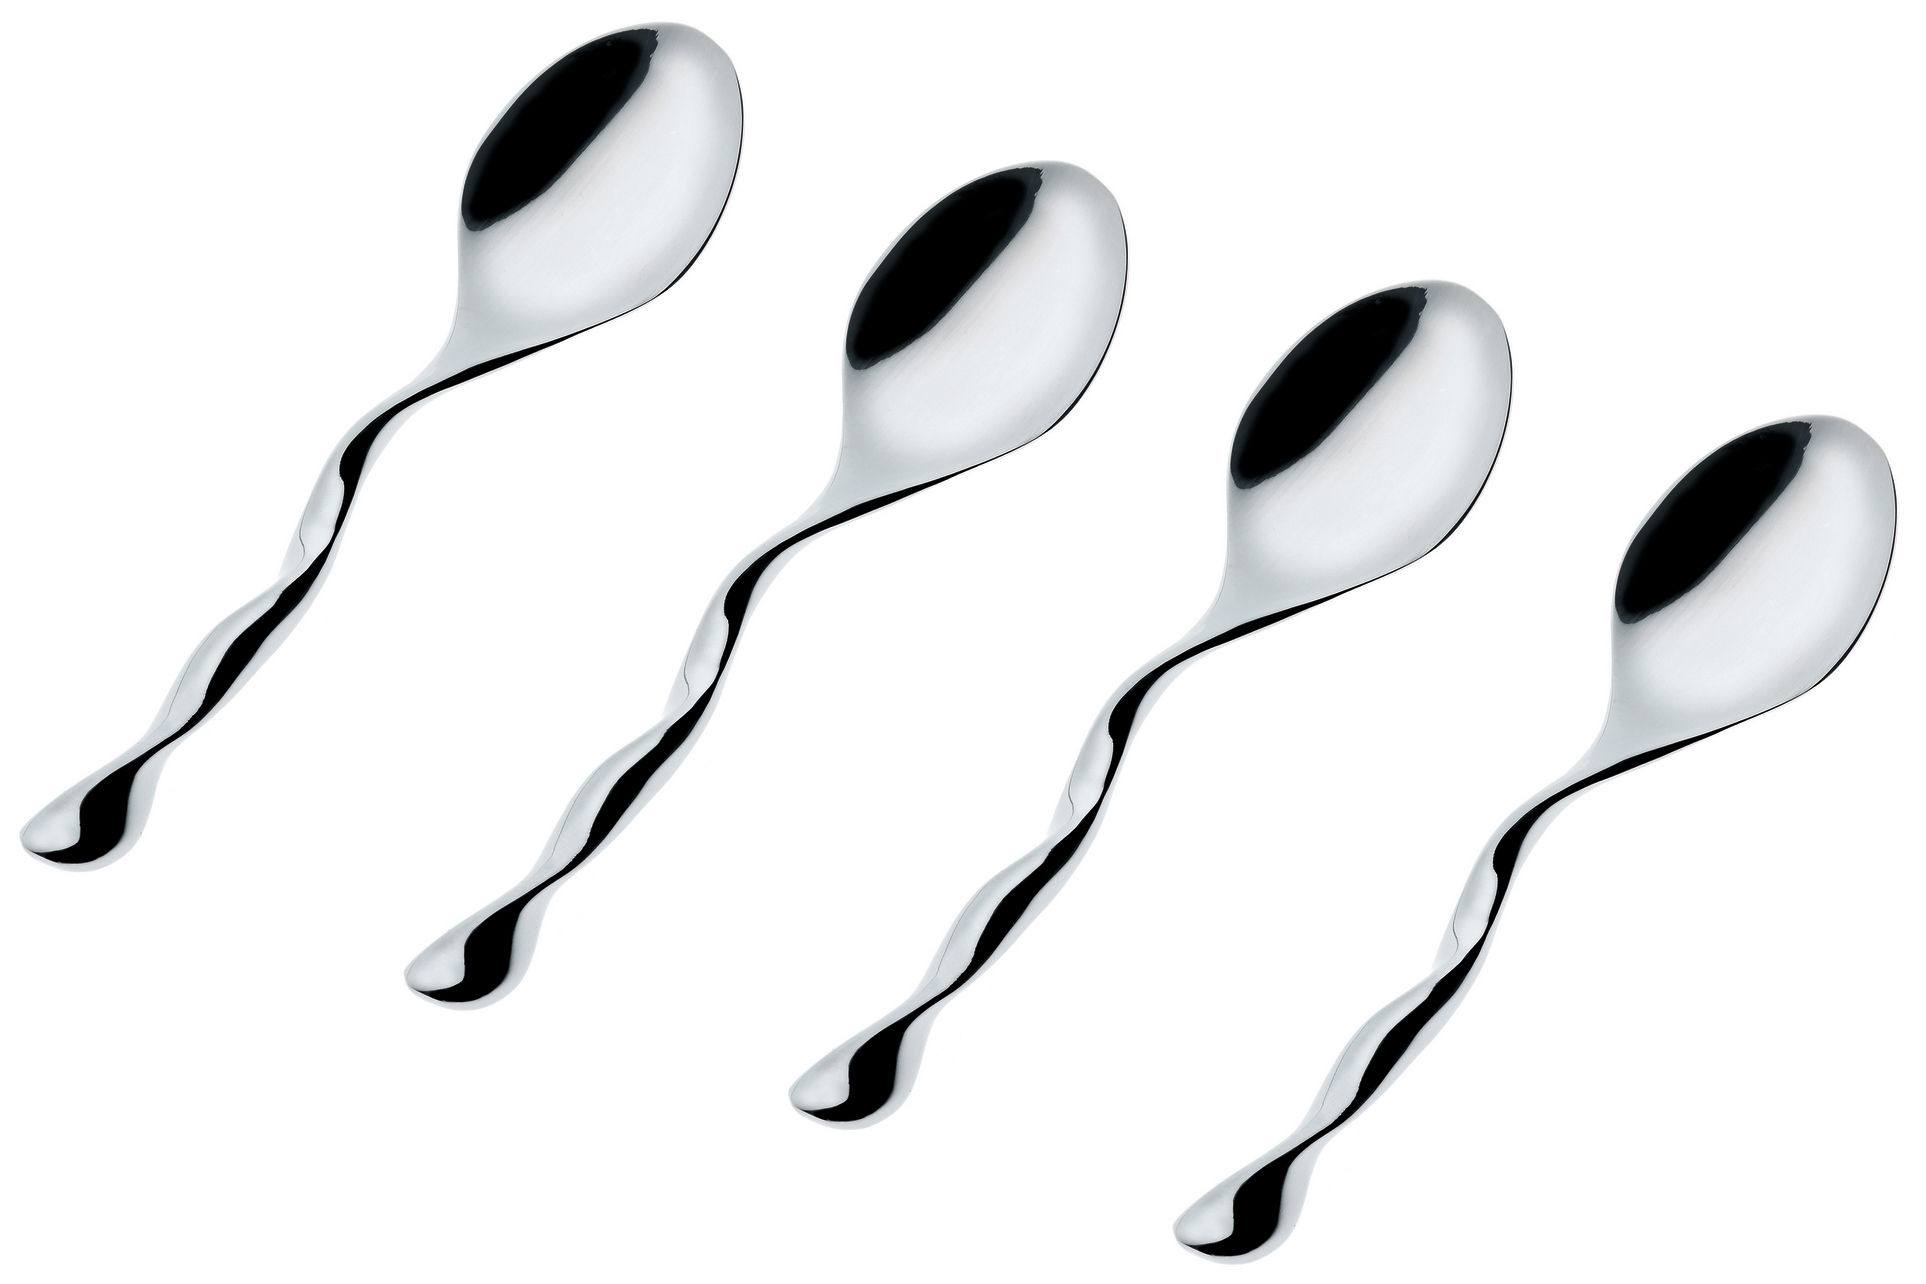 Tableware - Cutlery - Il Caffè Alessi Coffee, tea spoon - Set of 4 by Alessi - Steel - Stainless steel